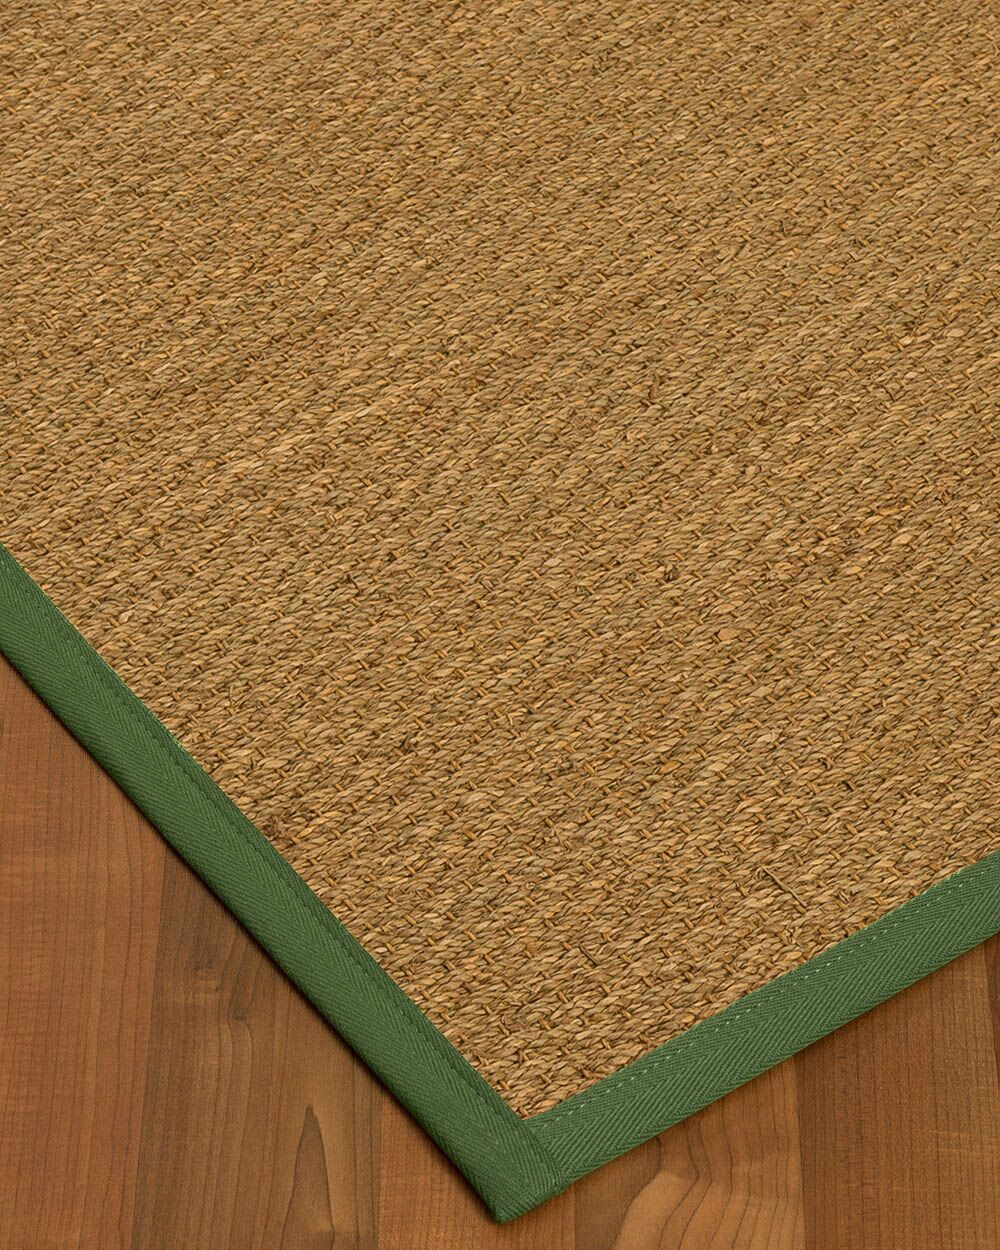 Anya Border Hand-Woven Beige/Green Area Rug Rug Size: Rectangle 6' x 9', Rug Pad Included: Yes